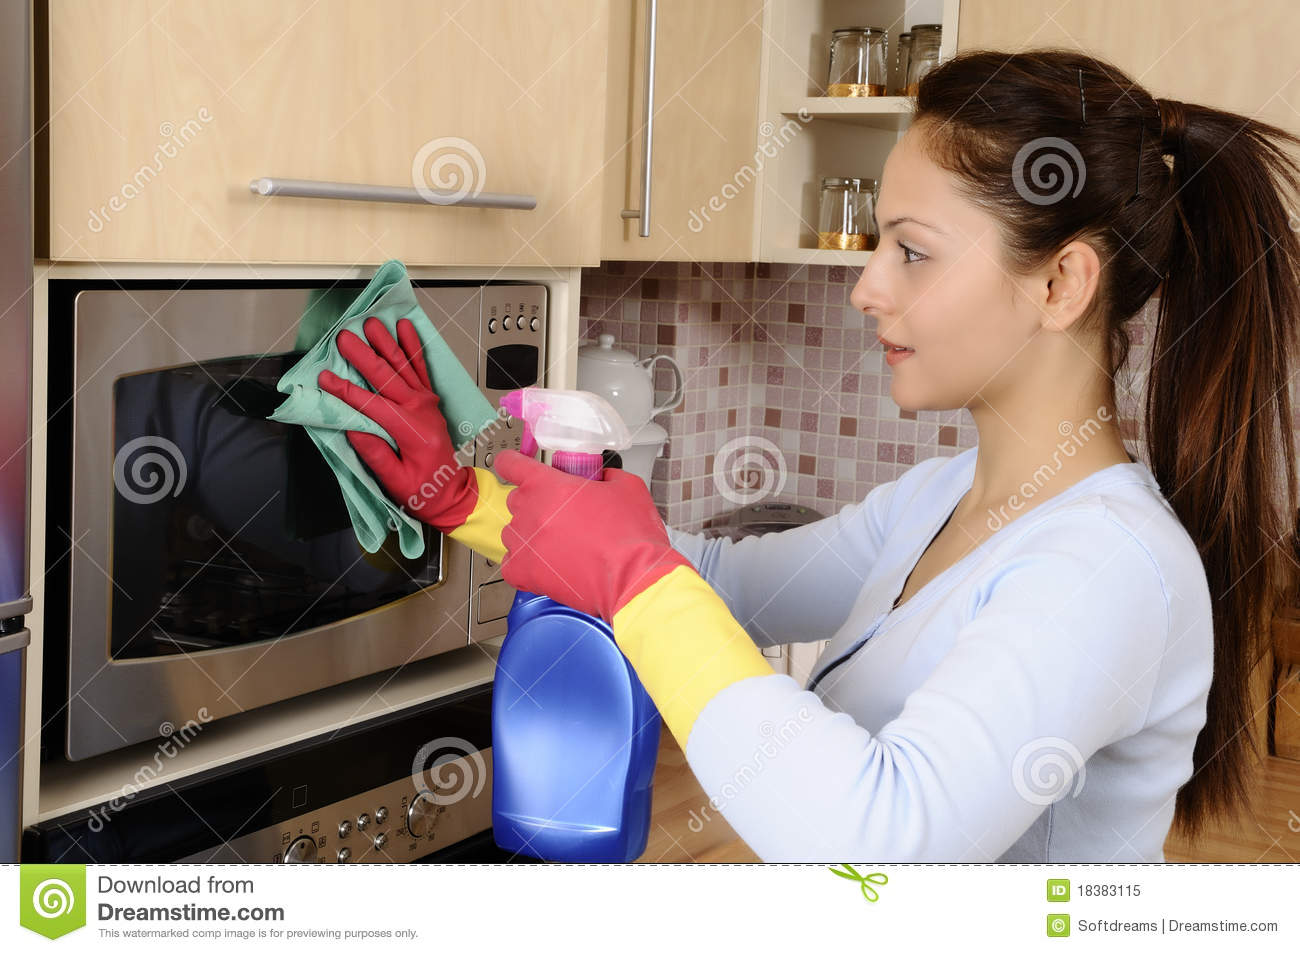 Kitchen Sink Cleaner >> Girl Cleaning The House Royalty Free Stock Photo - Image: 18383115